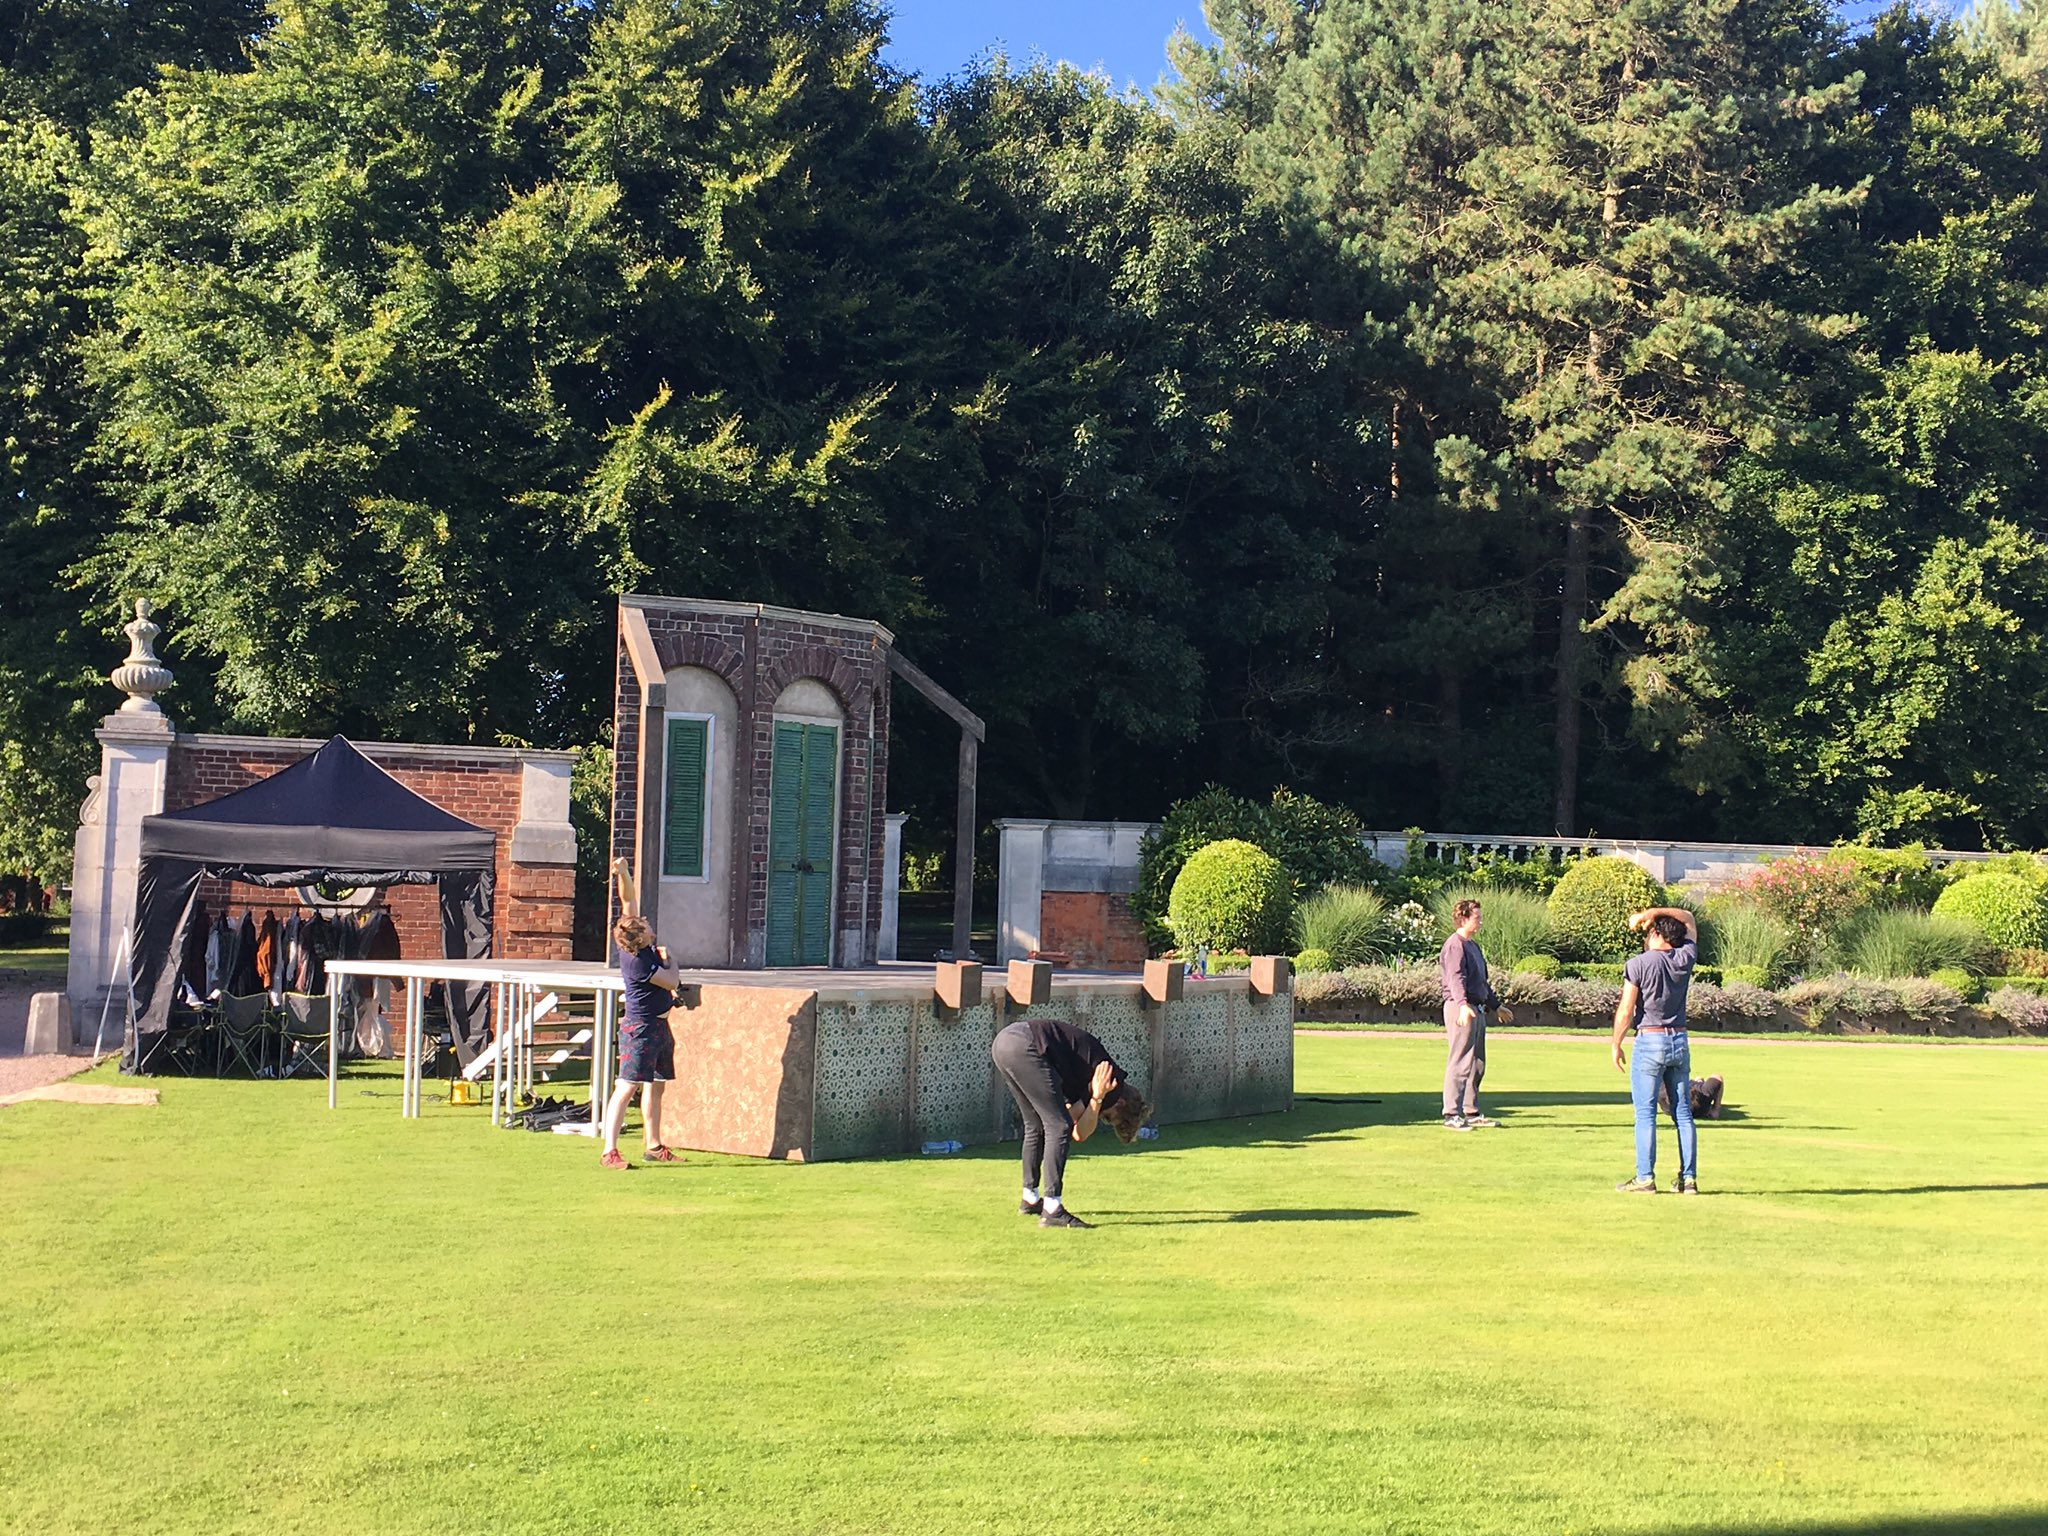 Tonight's actors are now warming up @TLCMuk @KnowsleyHall #Shakespeare #Knowsley https://t.co/TtJQCrJvoU